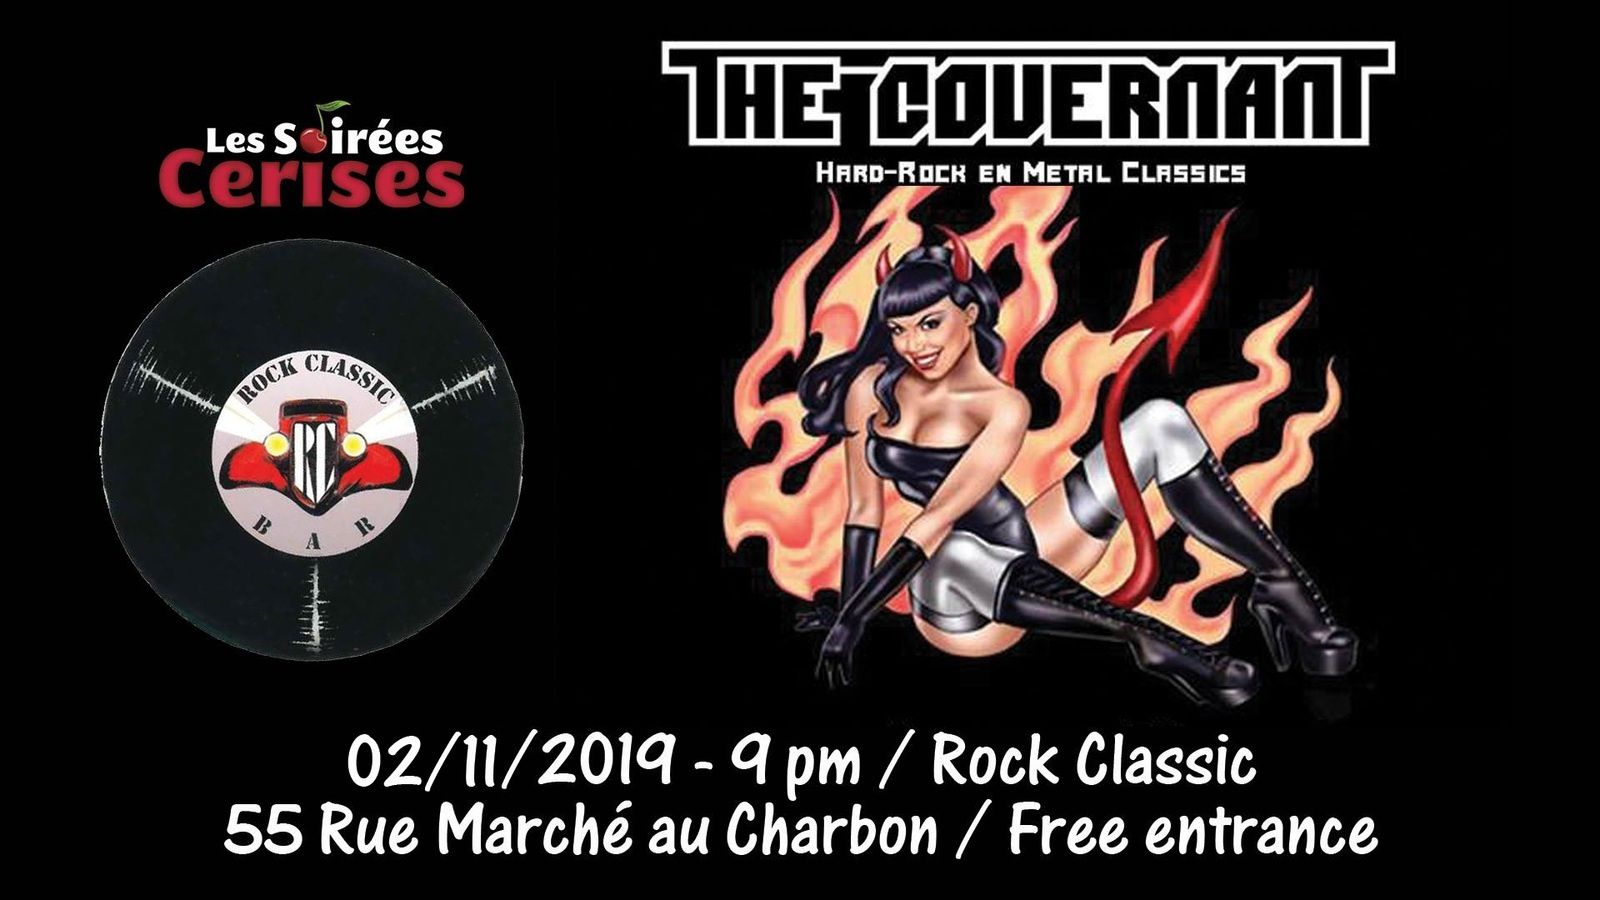 ▶ The Covernant (Metal classics covers band) @ Rock Classic - 02/11/2019 - 21h00 - Entrée gratuite / Free entrance